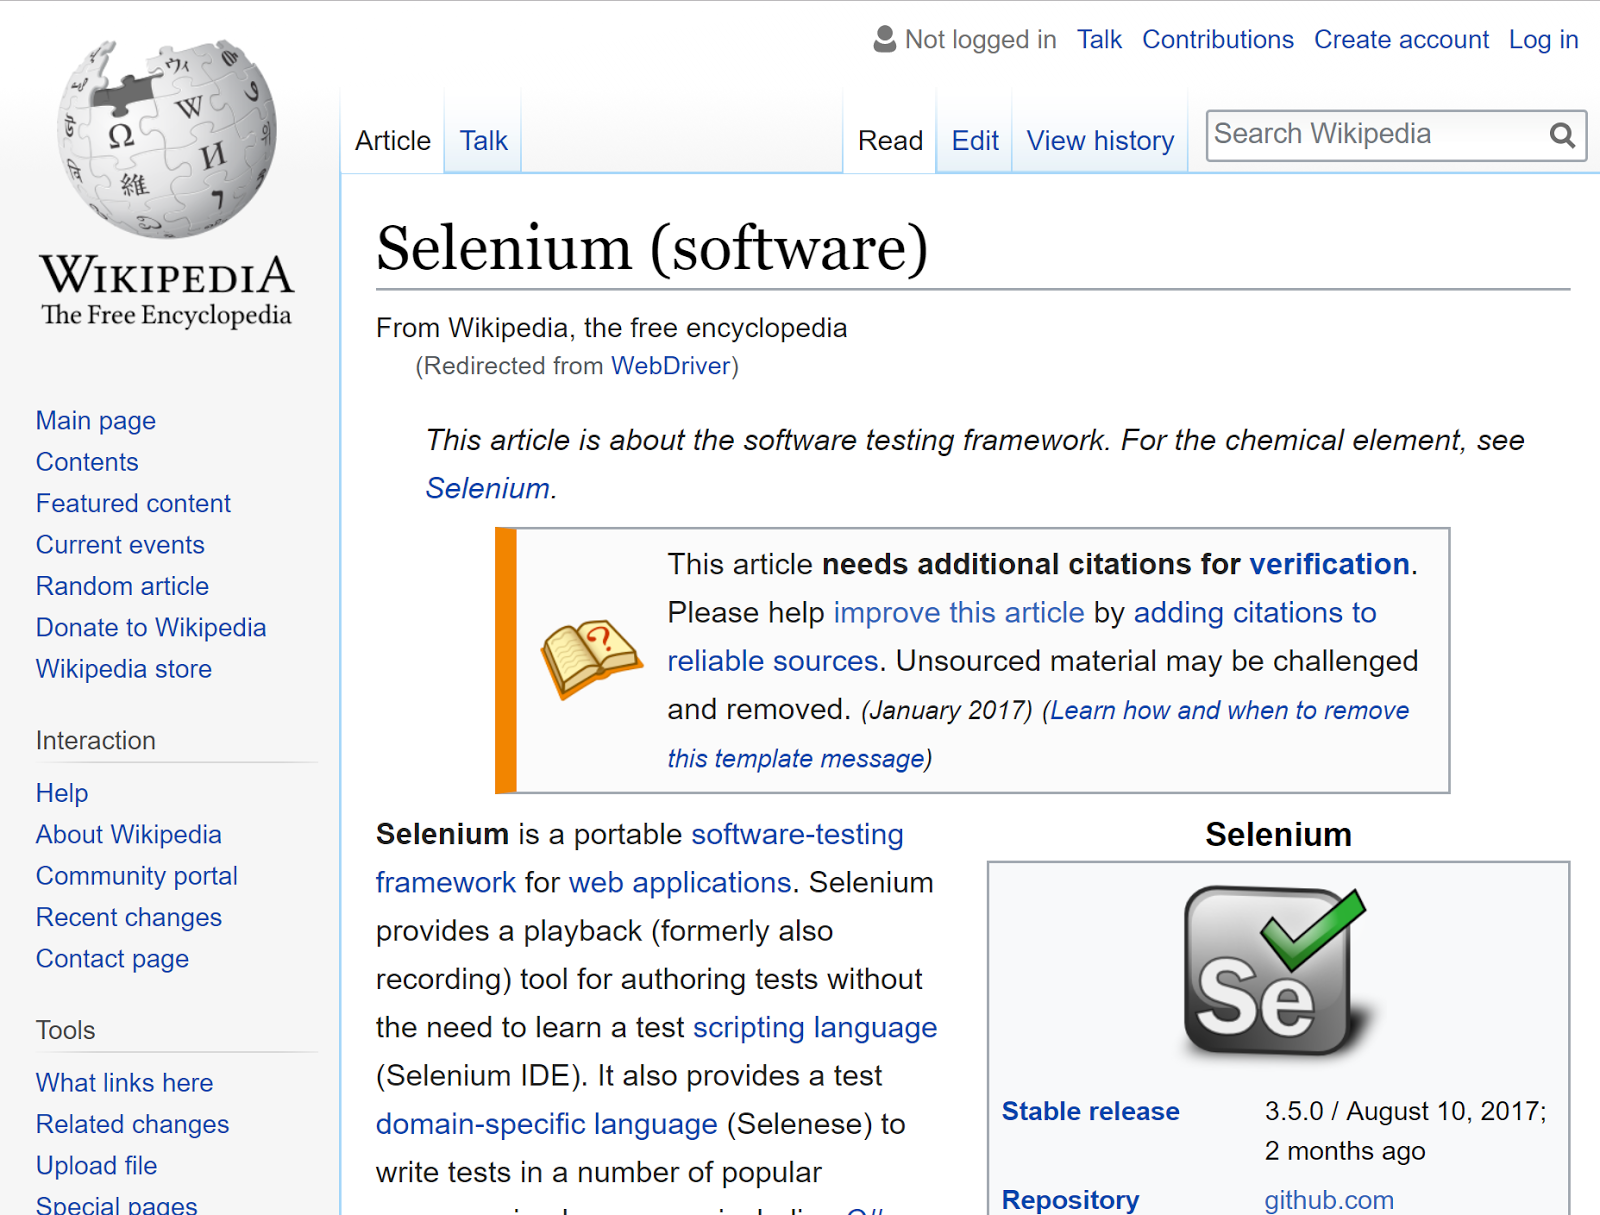 Love Selenium? It may be cheating on you - By